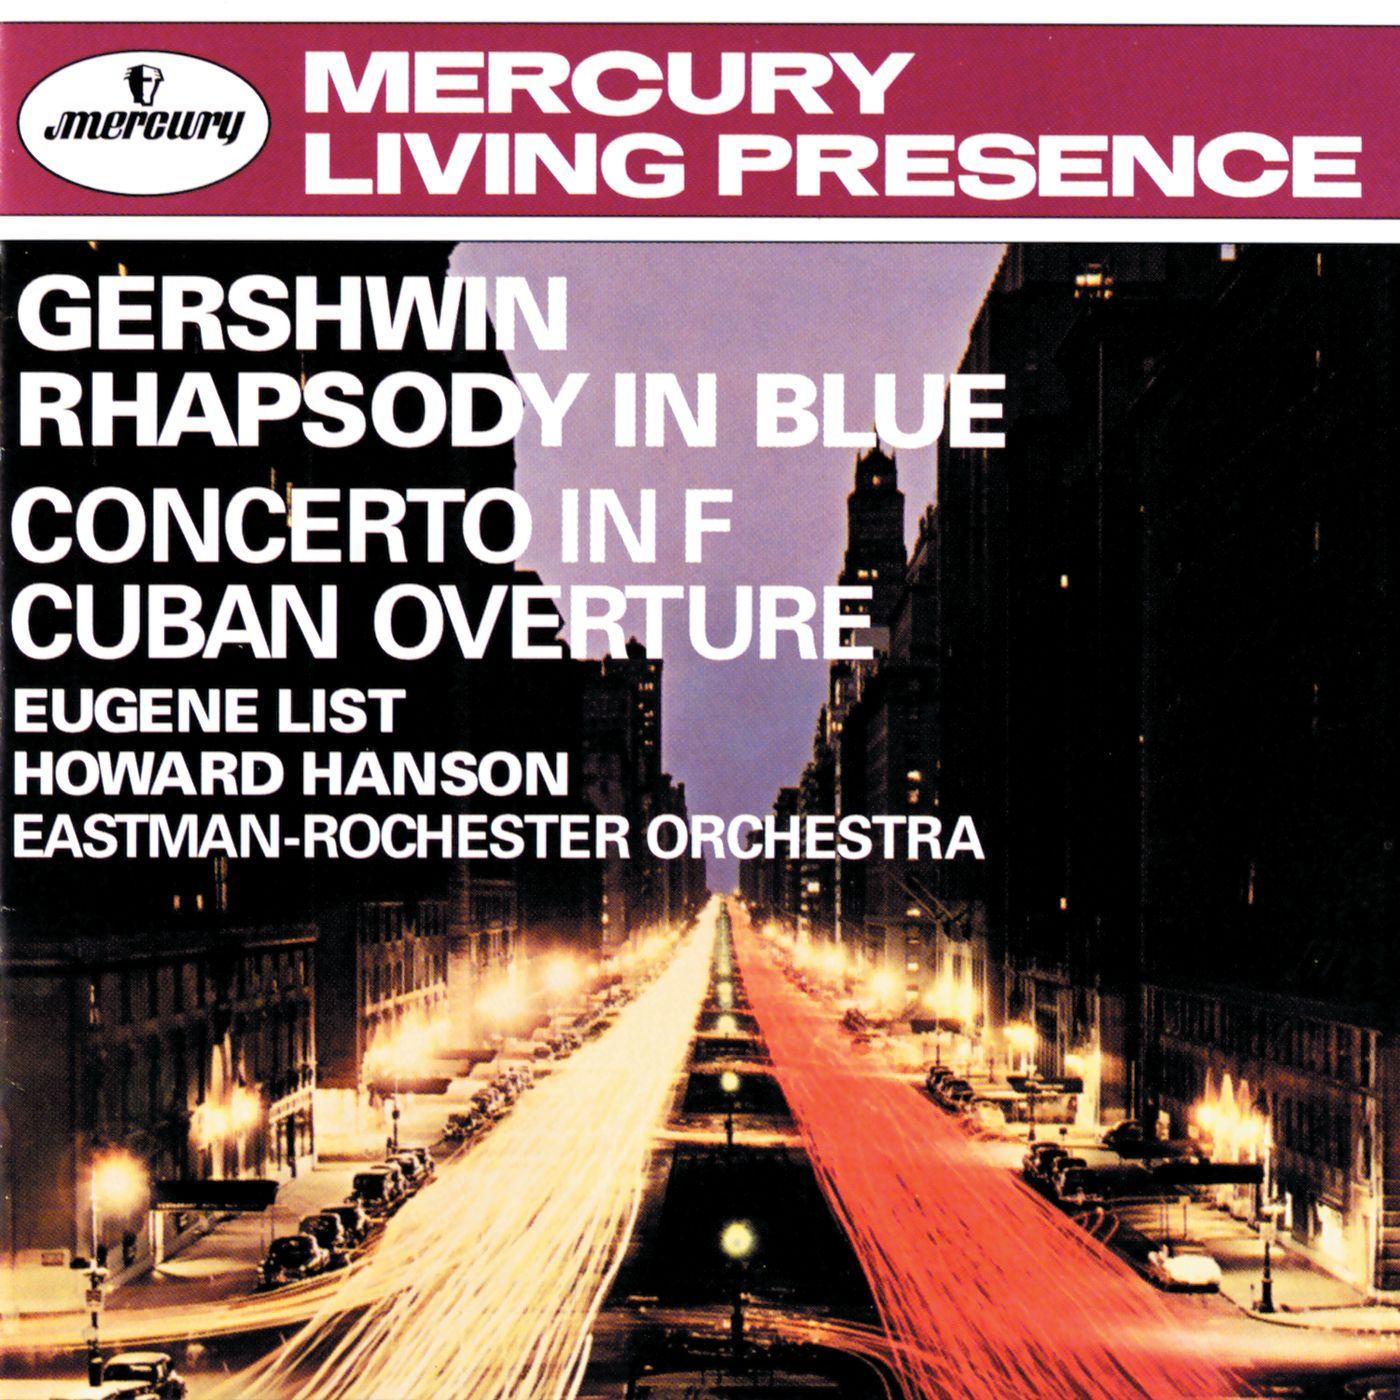 Hanson conducts Gershwin